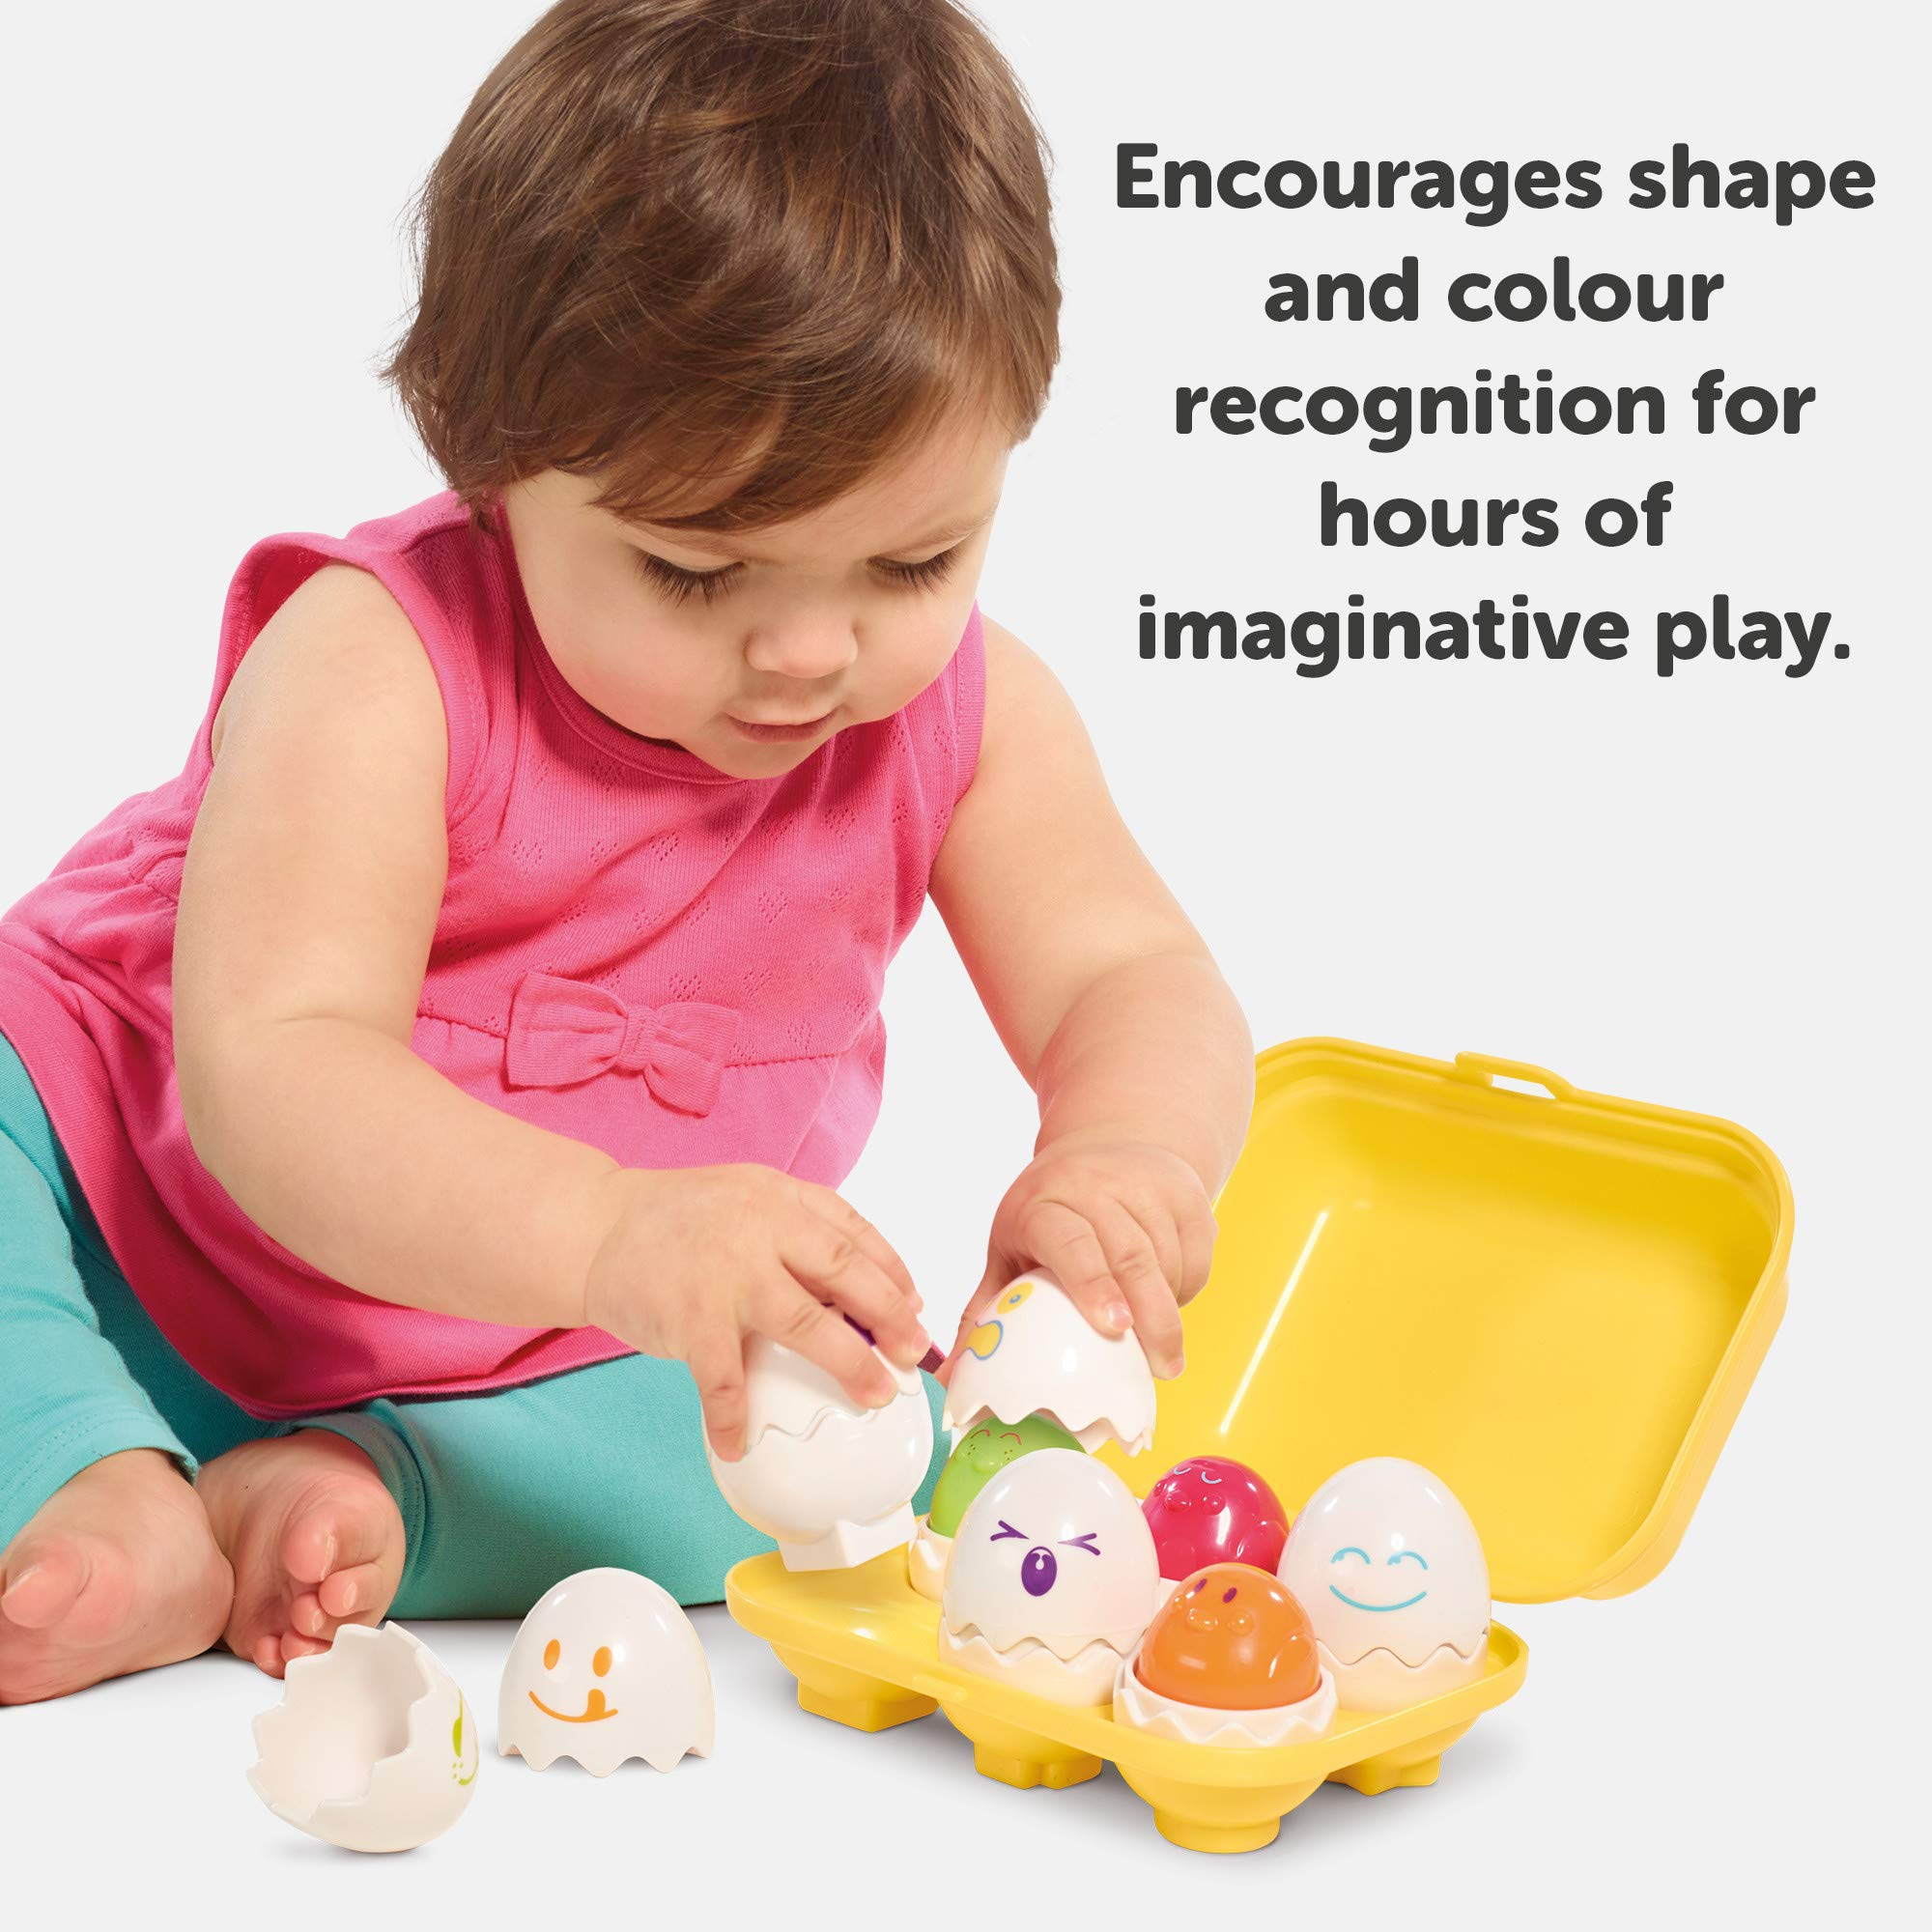 Hide n Squeak TOMY Eggs in Carton Toy Infant Shape and Mood Sorter Children Chicks Activity Learning Toddler Kids Easter Birthday Gift